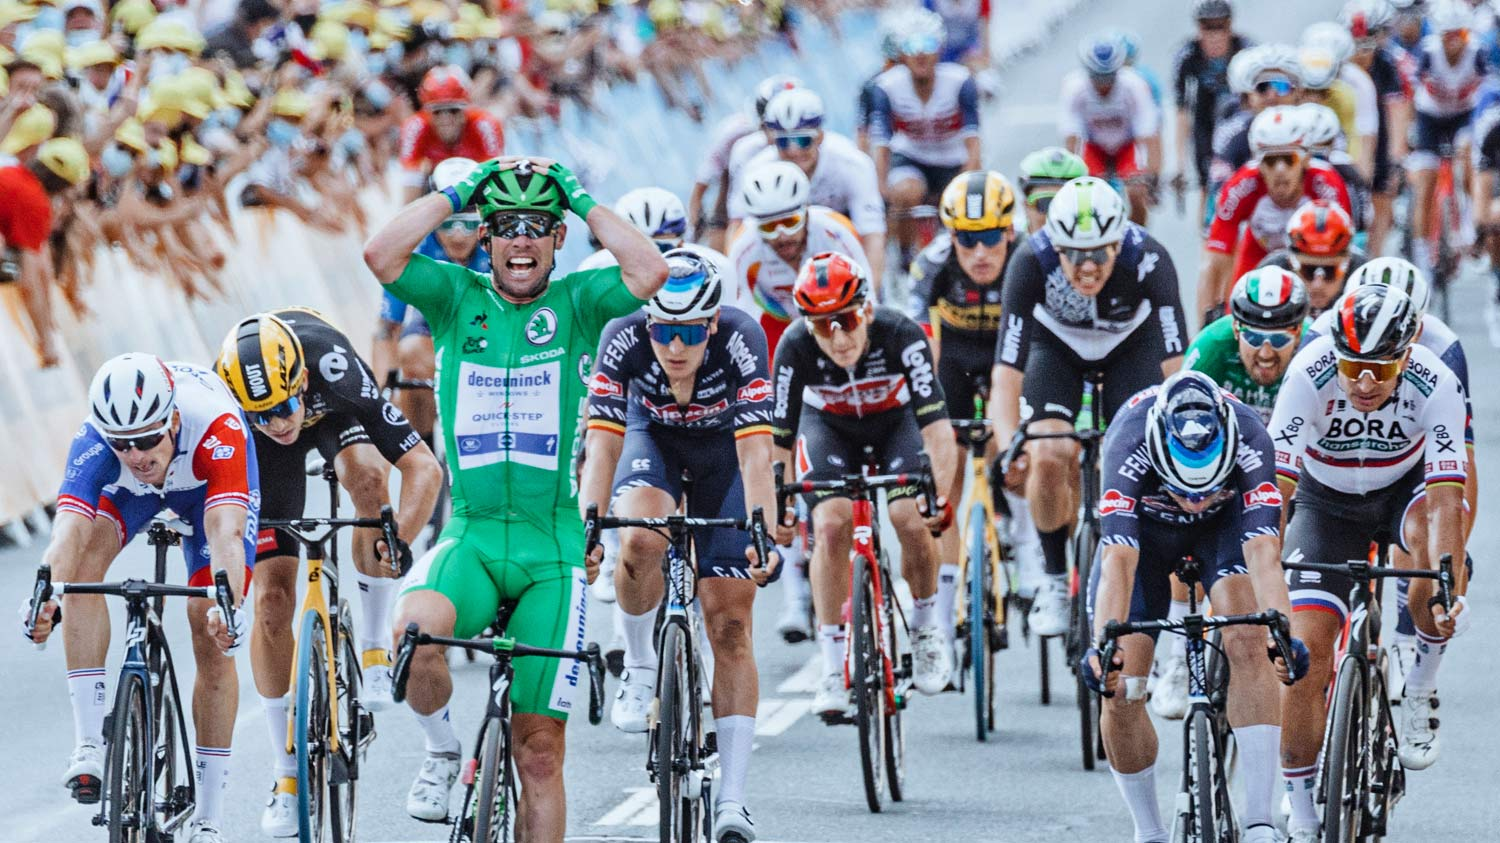 2021 Mark Cavendish 3x Tour de France stage winning green sprinter jersey Specialized S-Works Tarmac SL7, photo by Chris Auld, Stage 6 win